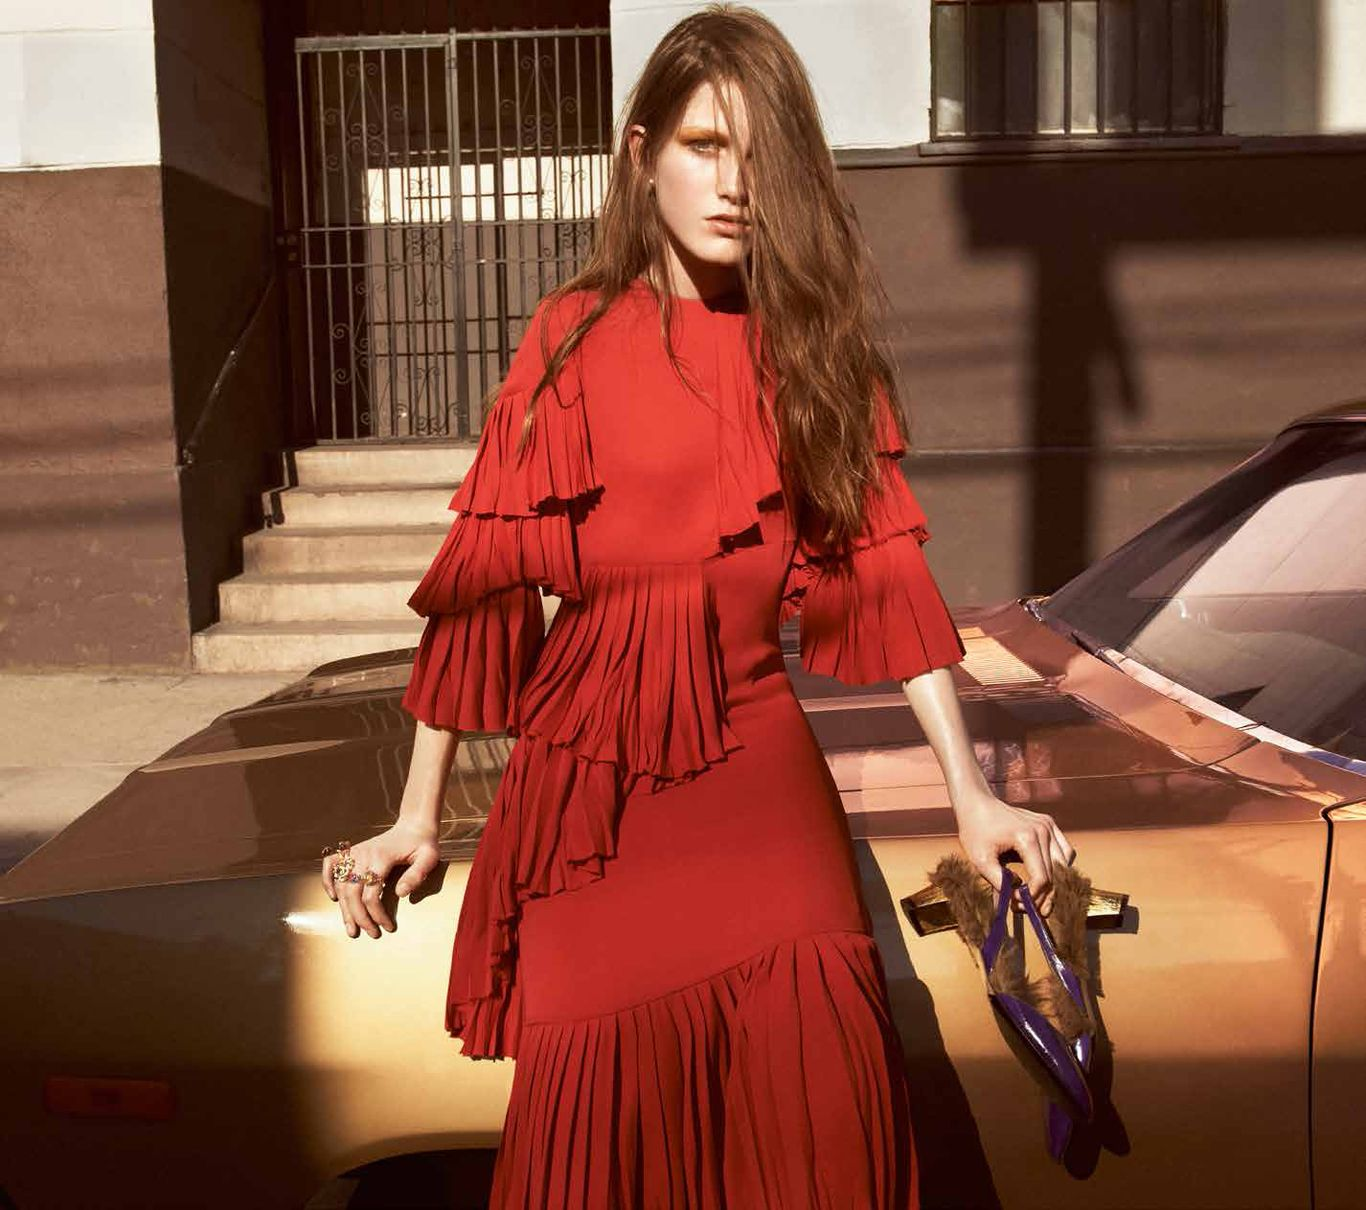 Guccis New Ads Are Further Proof of L.A.s Fashion Power advise